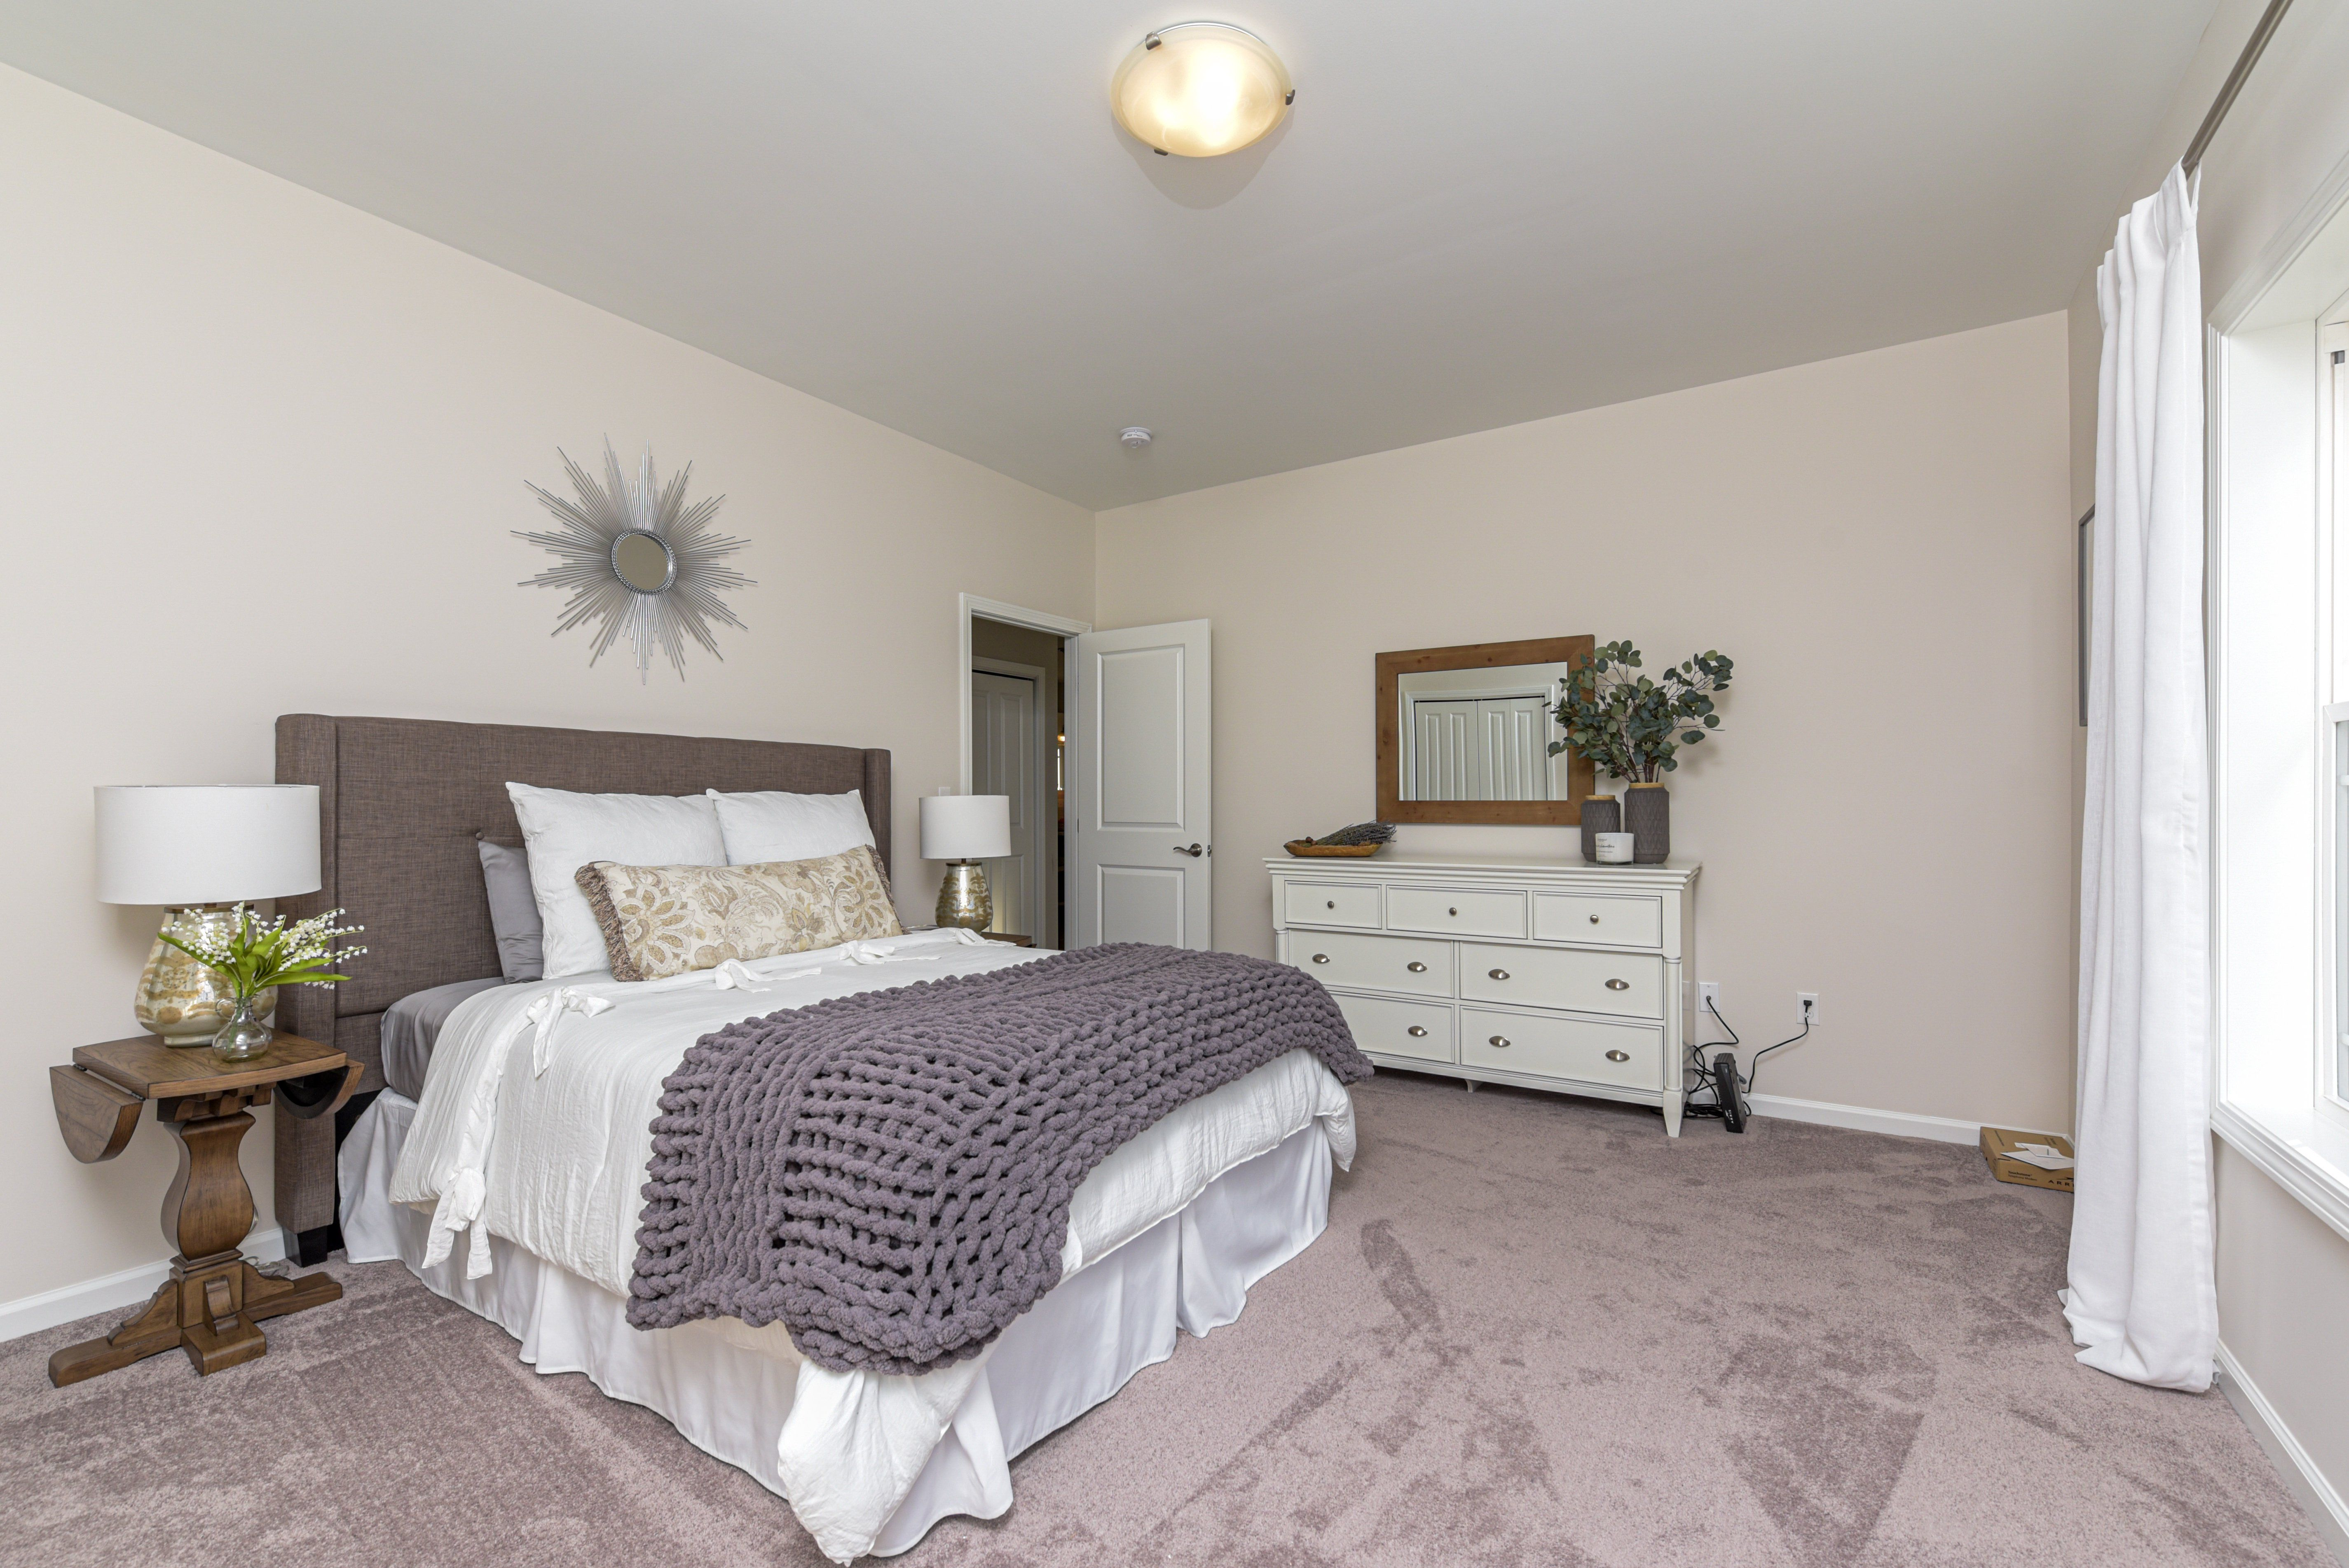 Bedroom featured in The Stiles By Calcagni Real Estate in New Haven-Meriden, CT